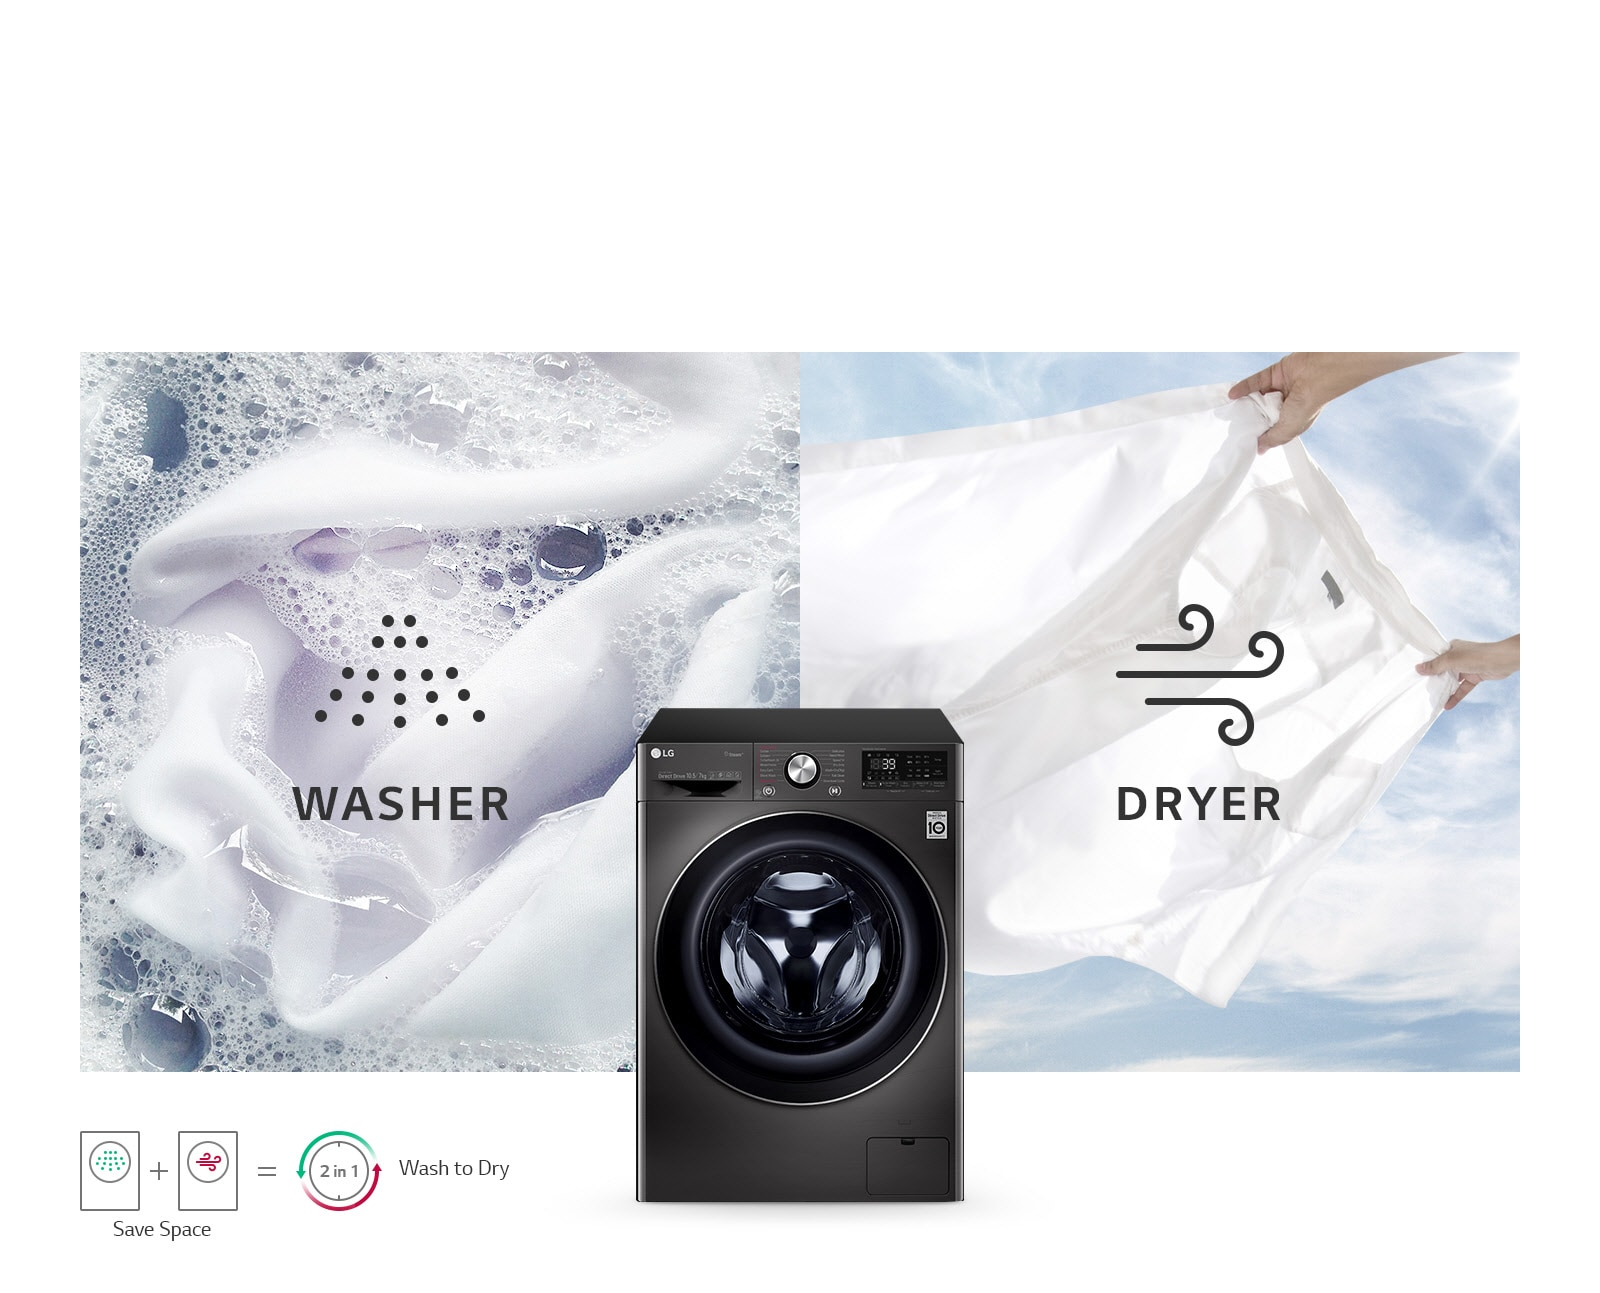 Washer and Dryer in One1